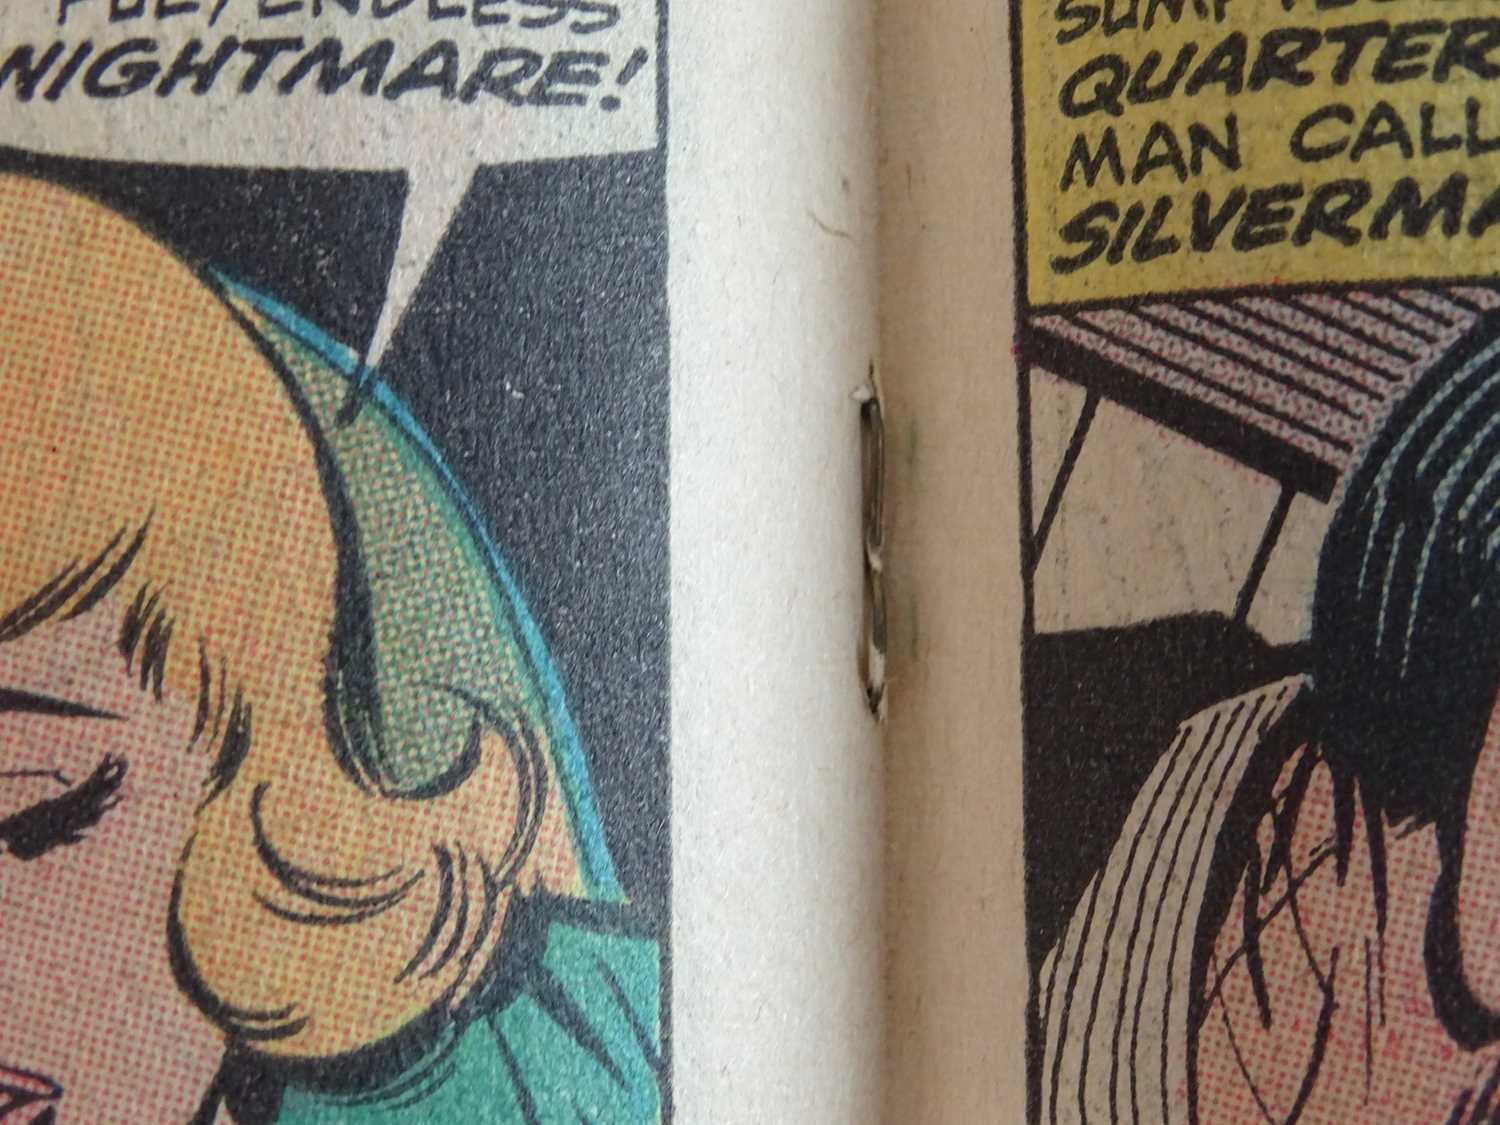 AMAZING SPIDER-MAN #74 - (1969 - MARVEL) - Spider-Man and Dr. Curt Connors (Lizard) battle - Image 7 of 9